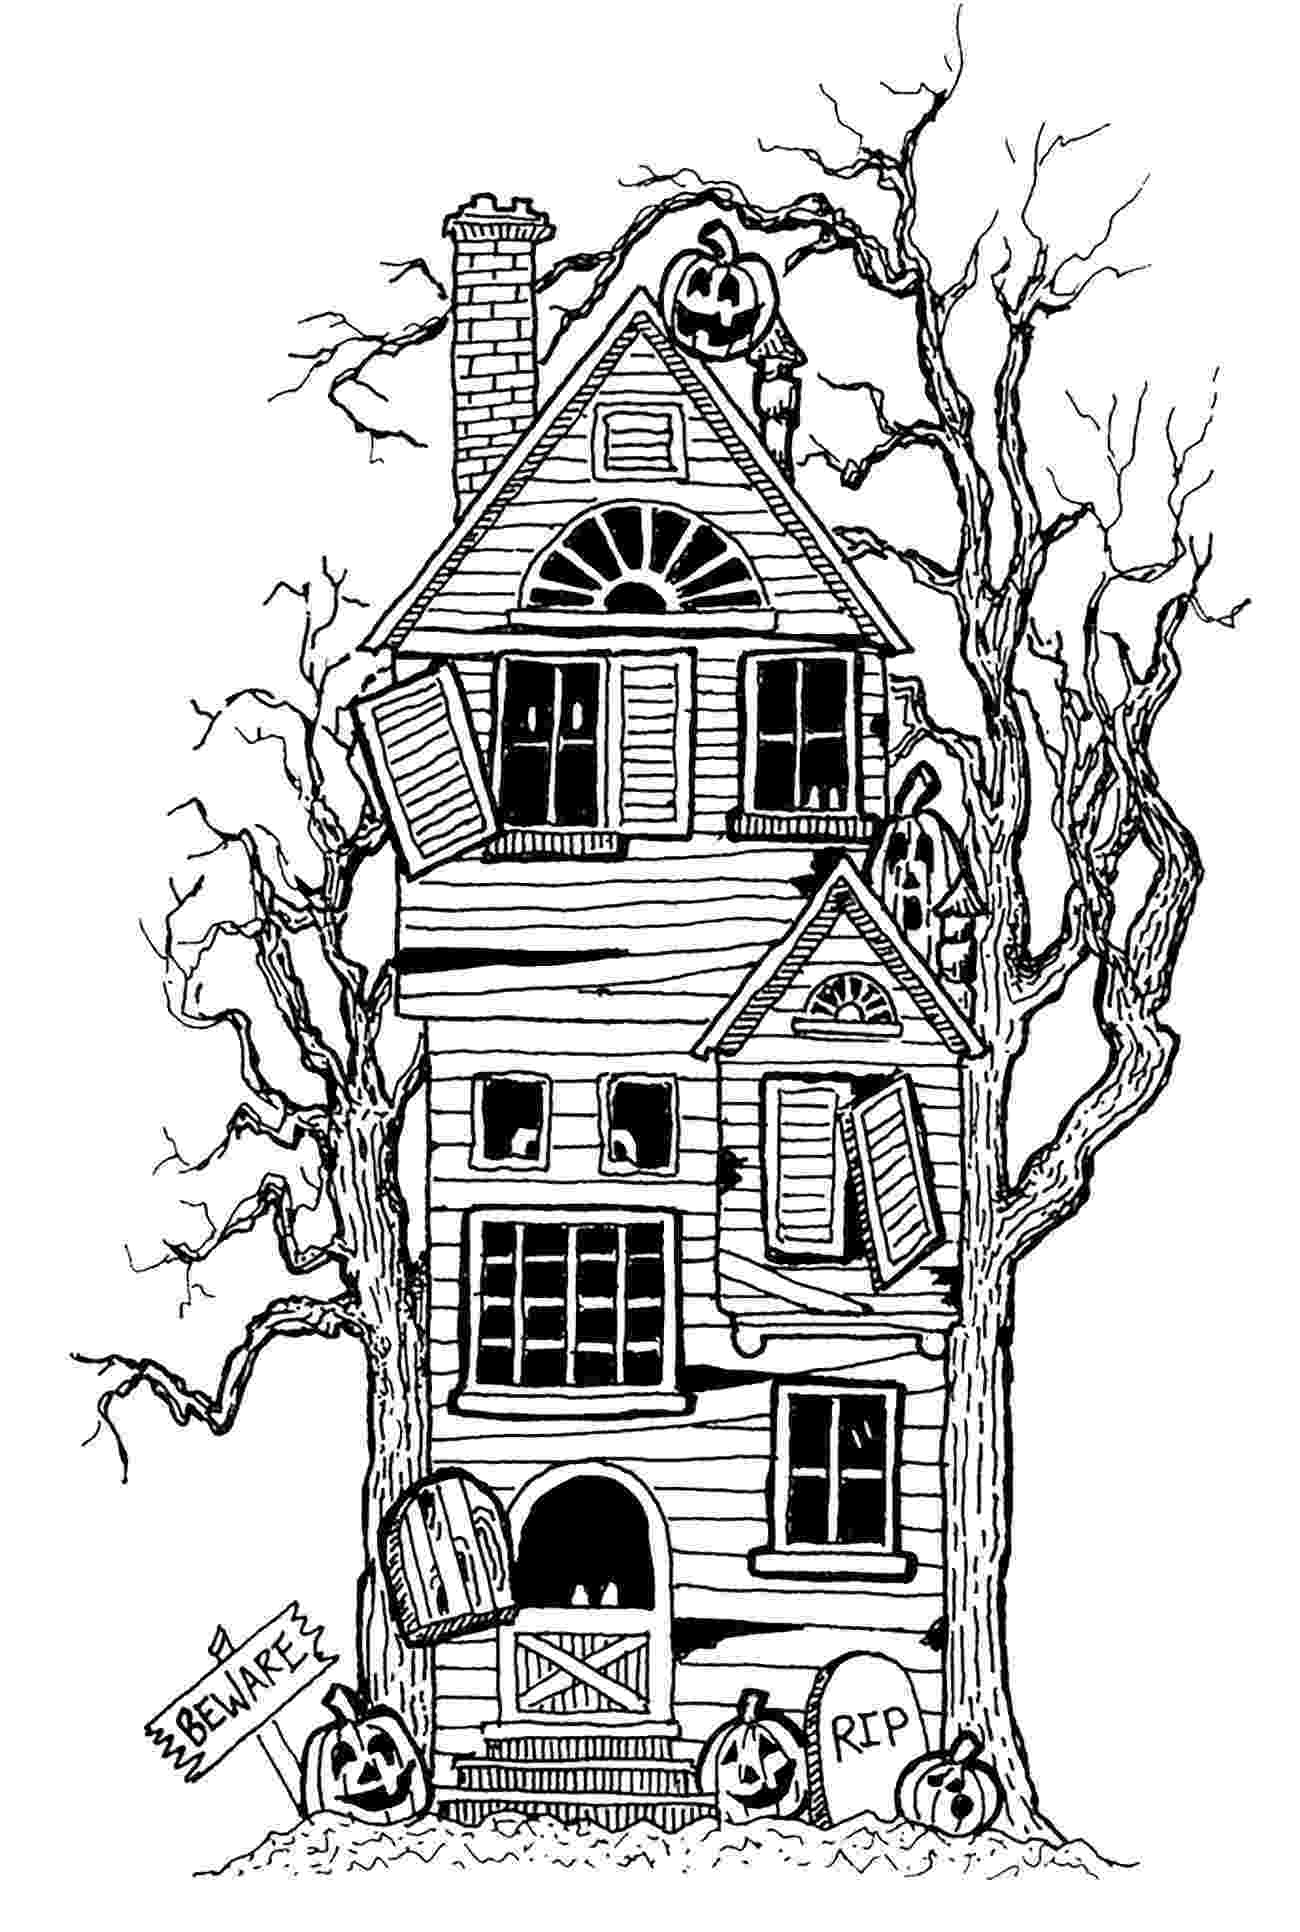 haunted house to color halloween big haunted house halloween adult coloring pages to haunted color house